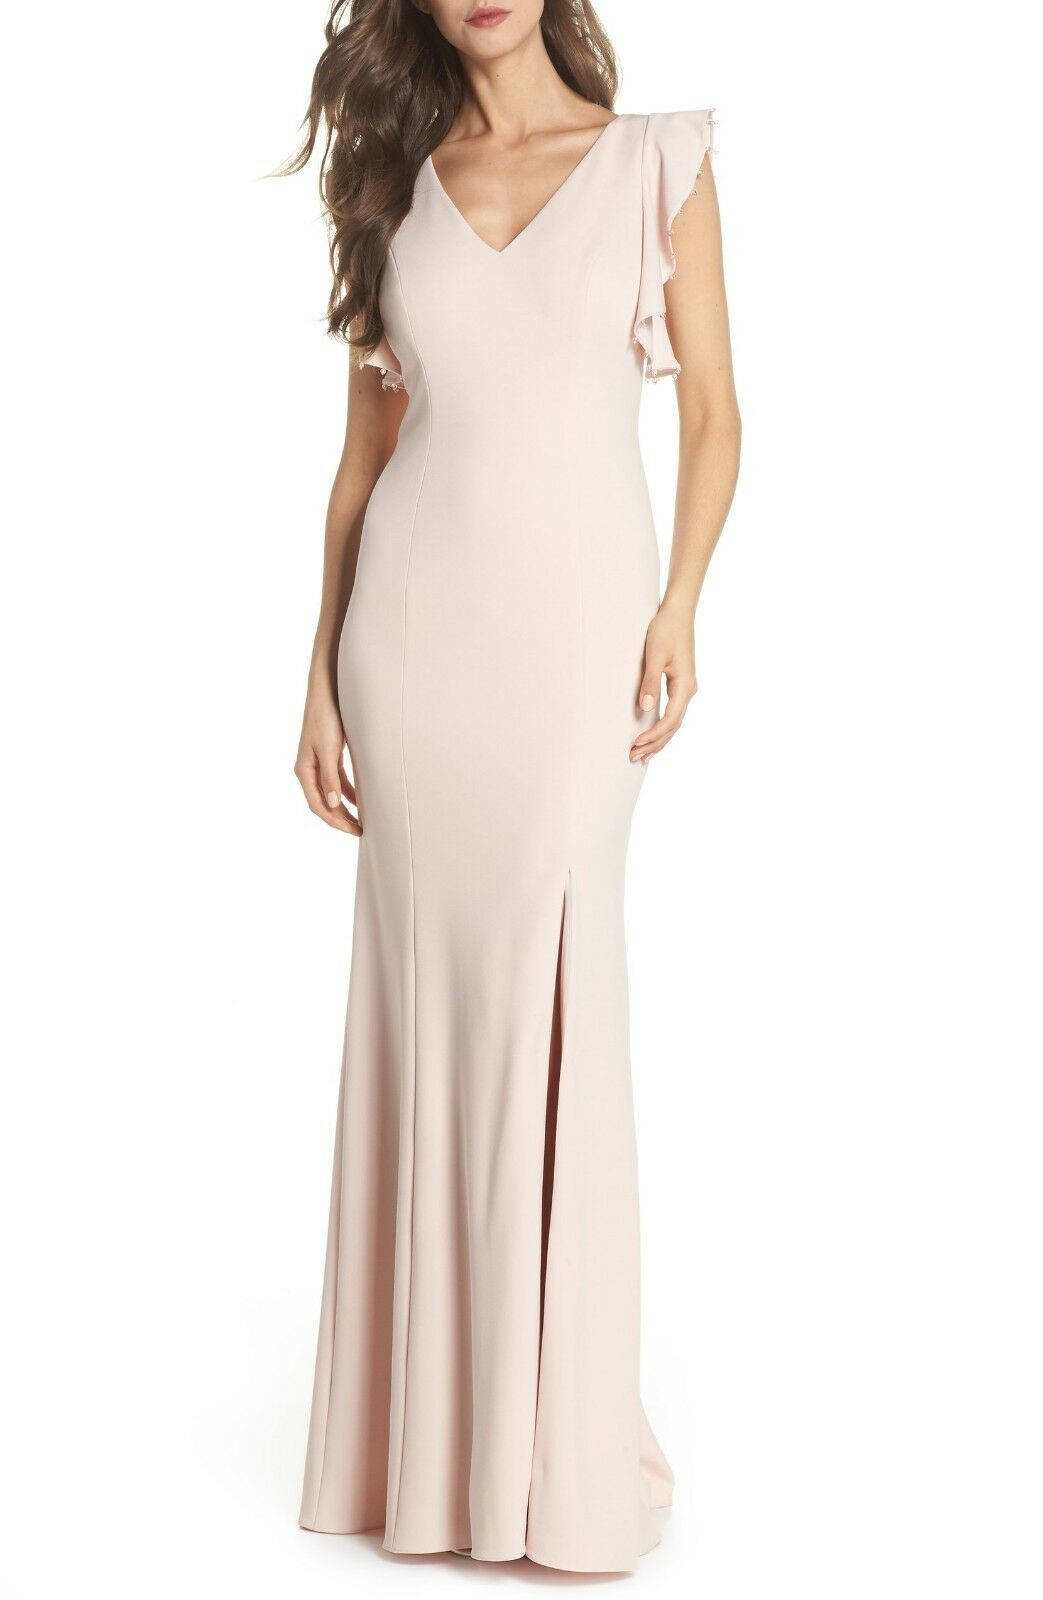 ADRIANNA PAPELL Flutter Manches Crêpe Trompette Robe, Taille 8, Retail  188,  BL1027